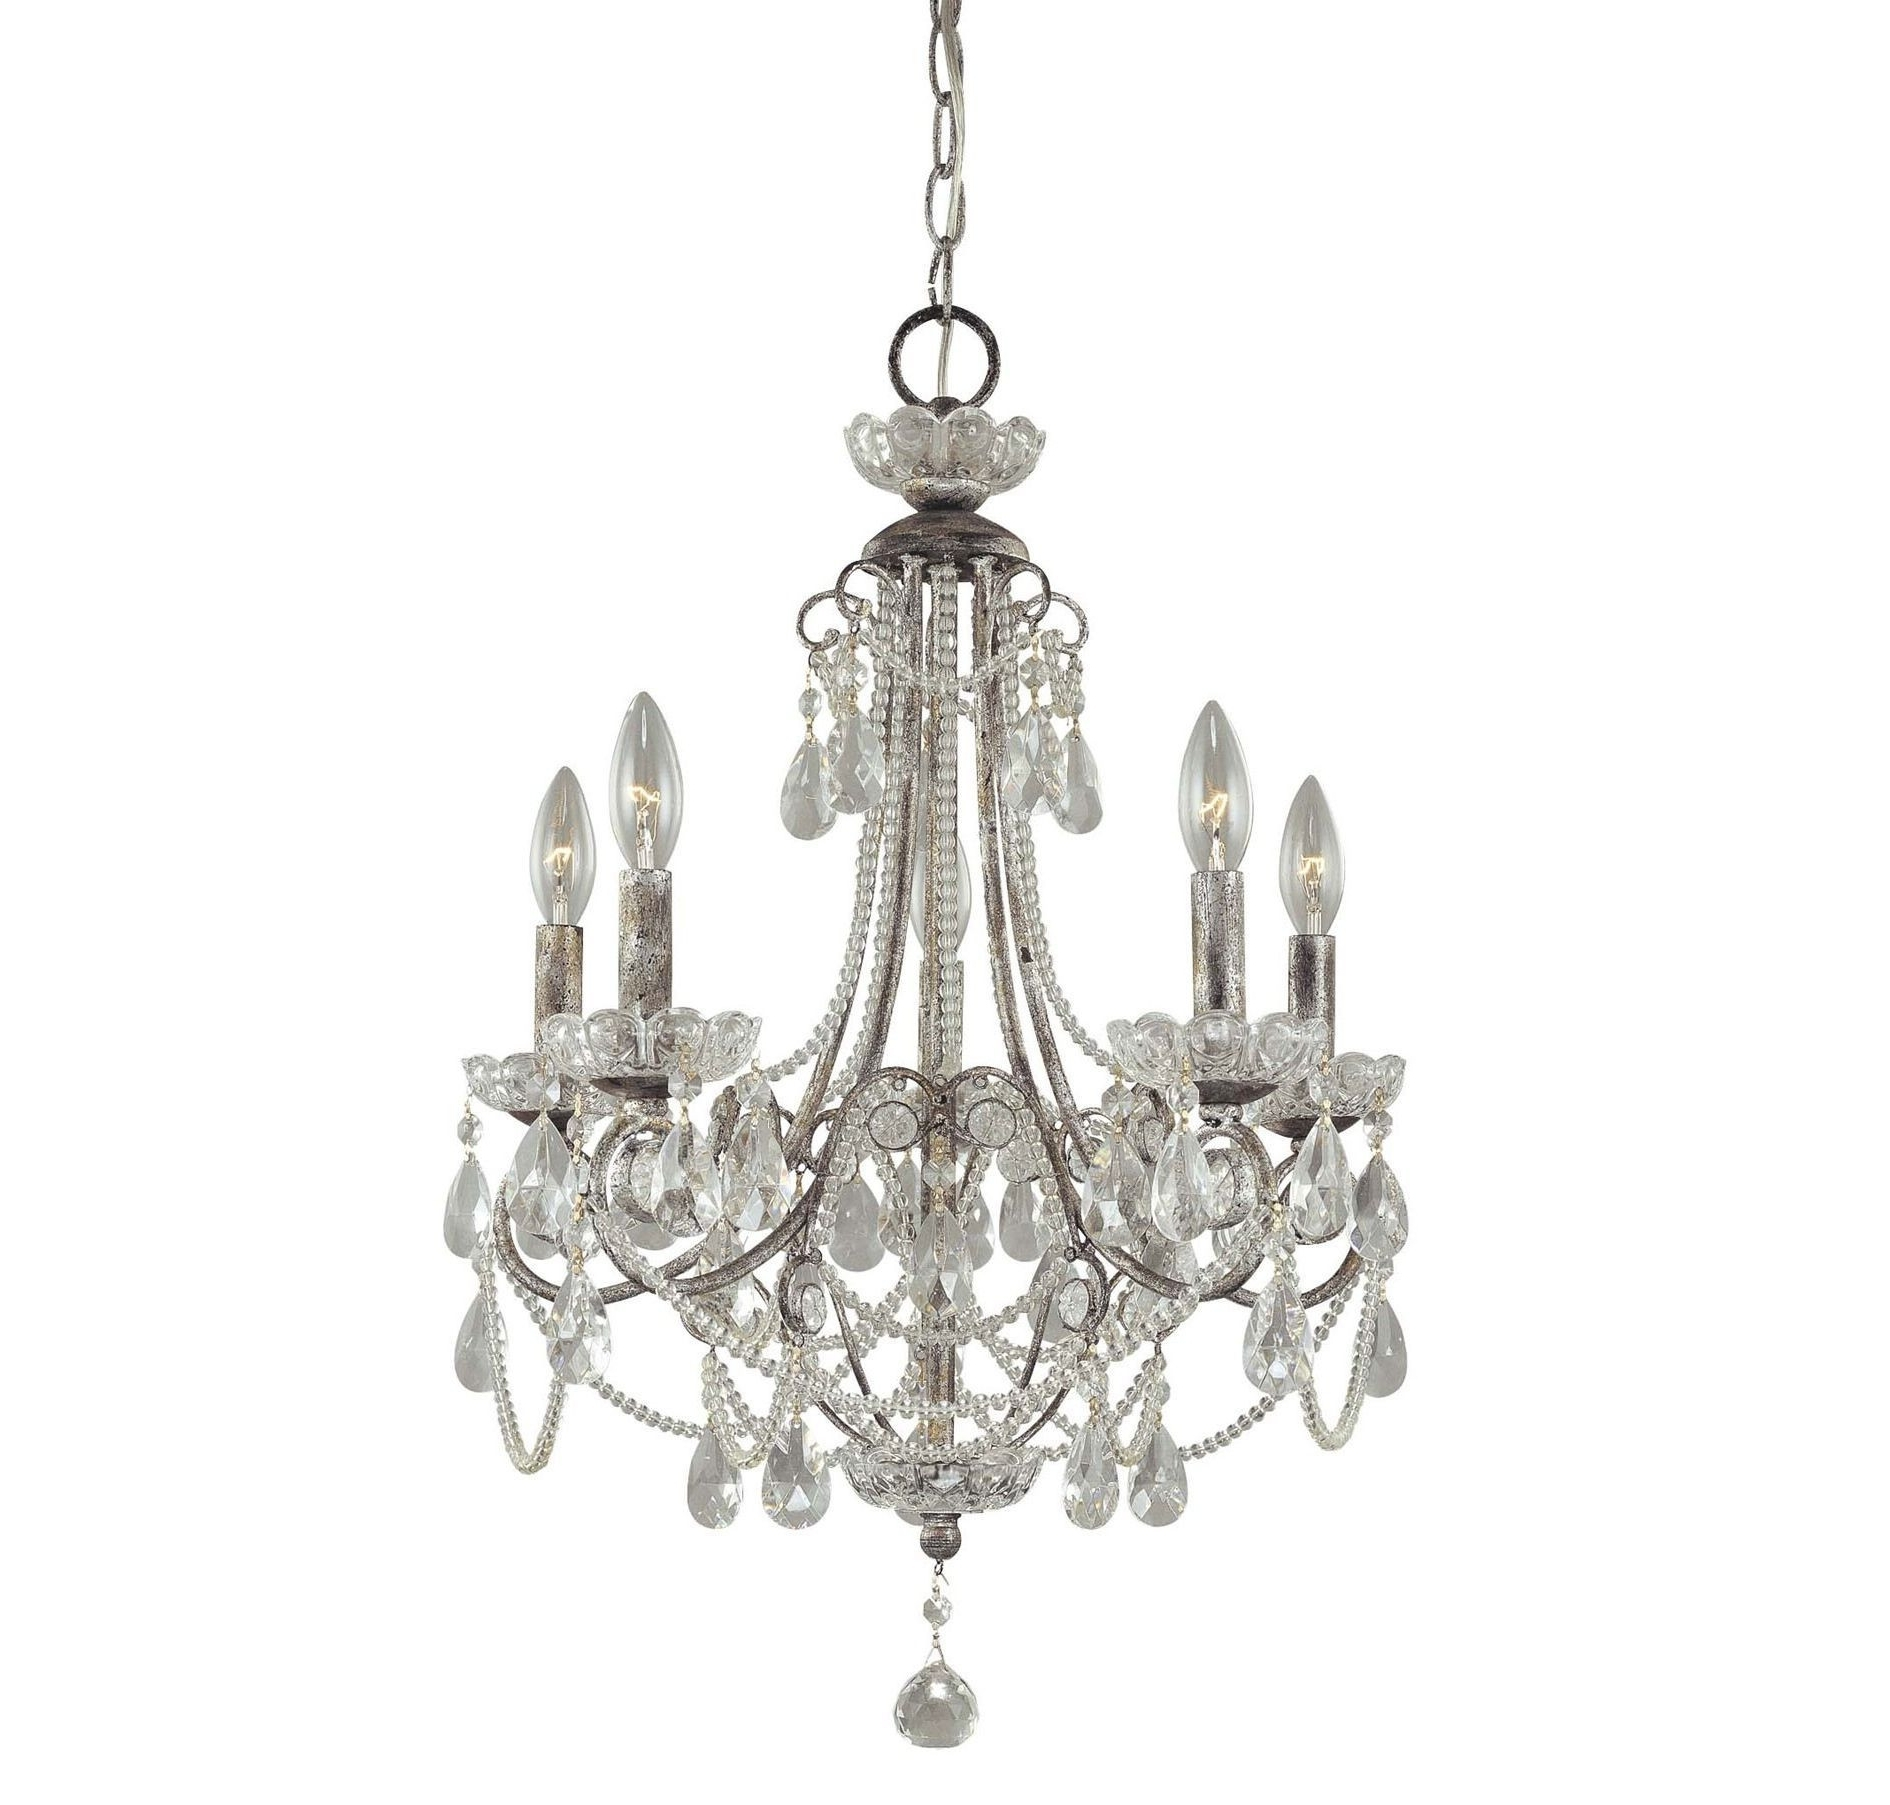 Chandeliers : Small Chandeliers For Bathroom Beautiful Amazing Of Inside Most Recently Released Small Chandeliers (View 7 of 20)